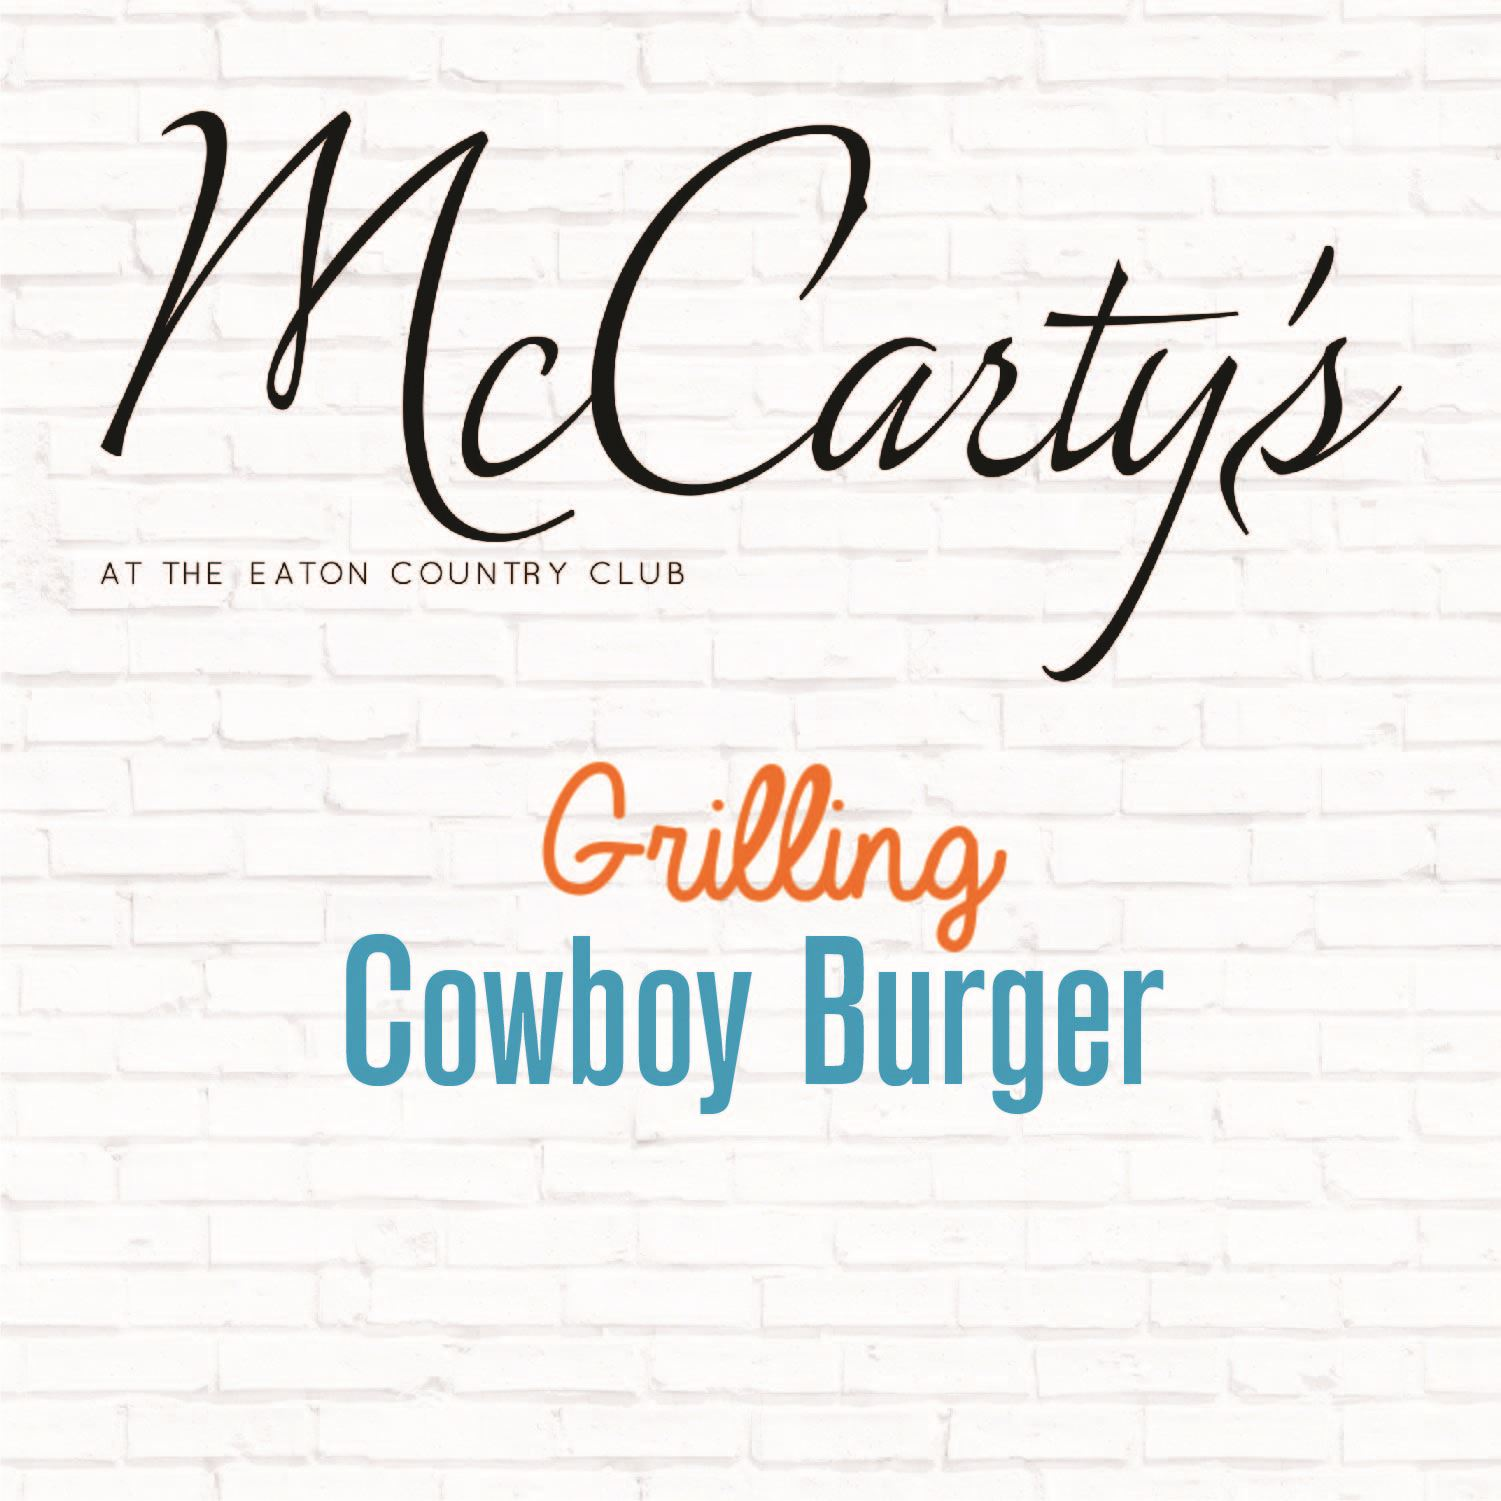 McCarty's at Eaton Country Club